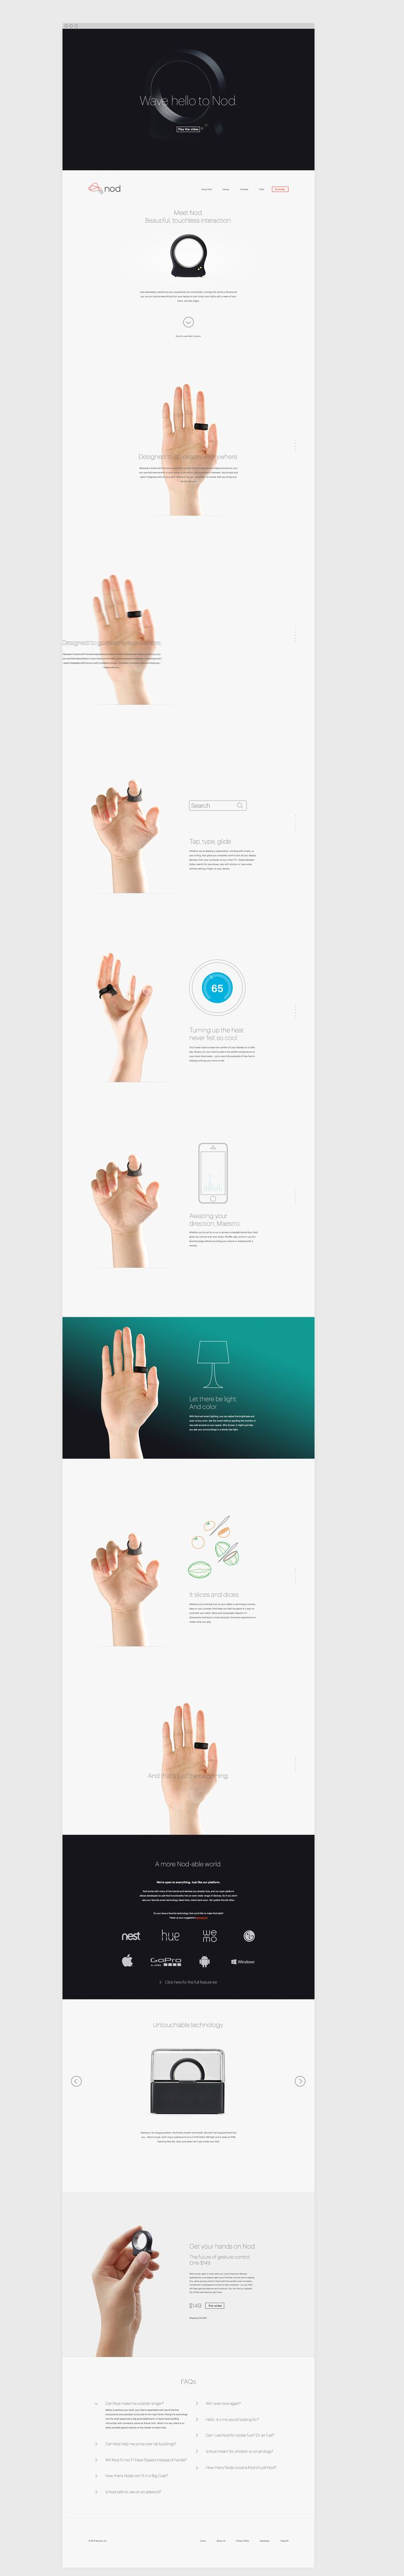 Nod is #WearableTech that allows you to control digital devices with your hand, pretty cool!